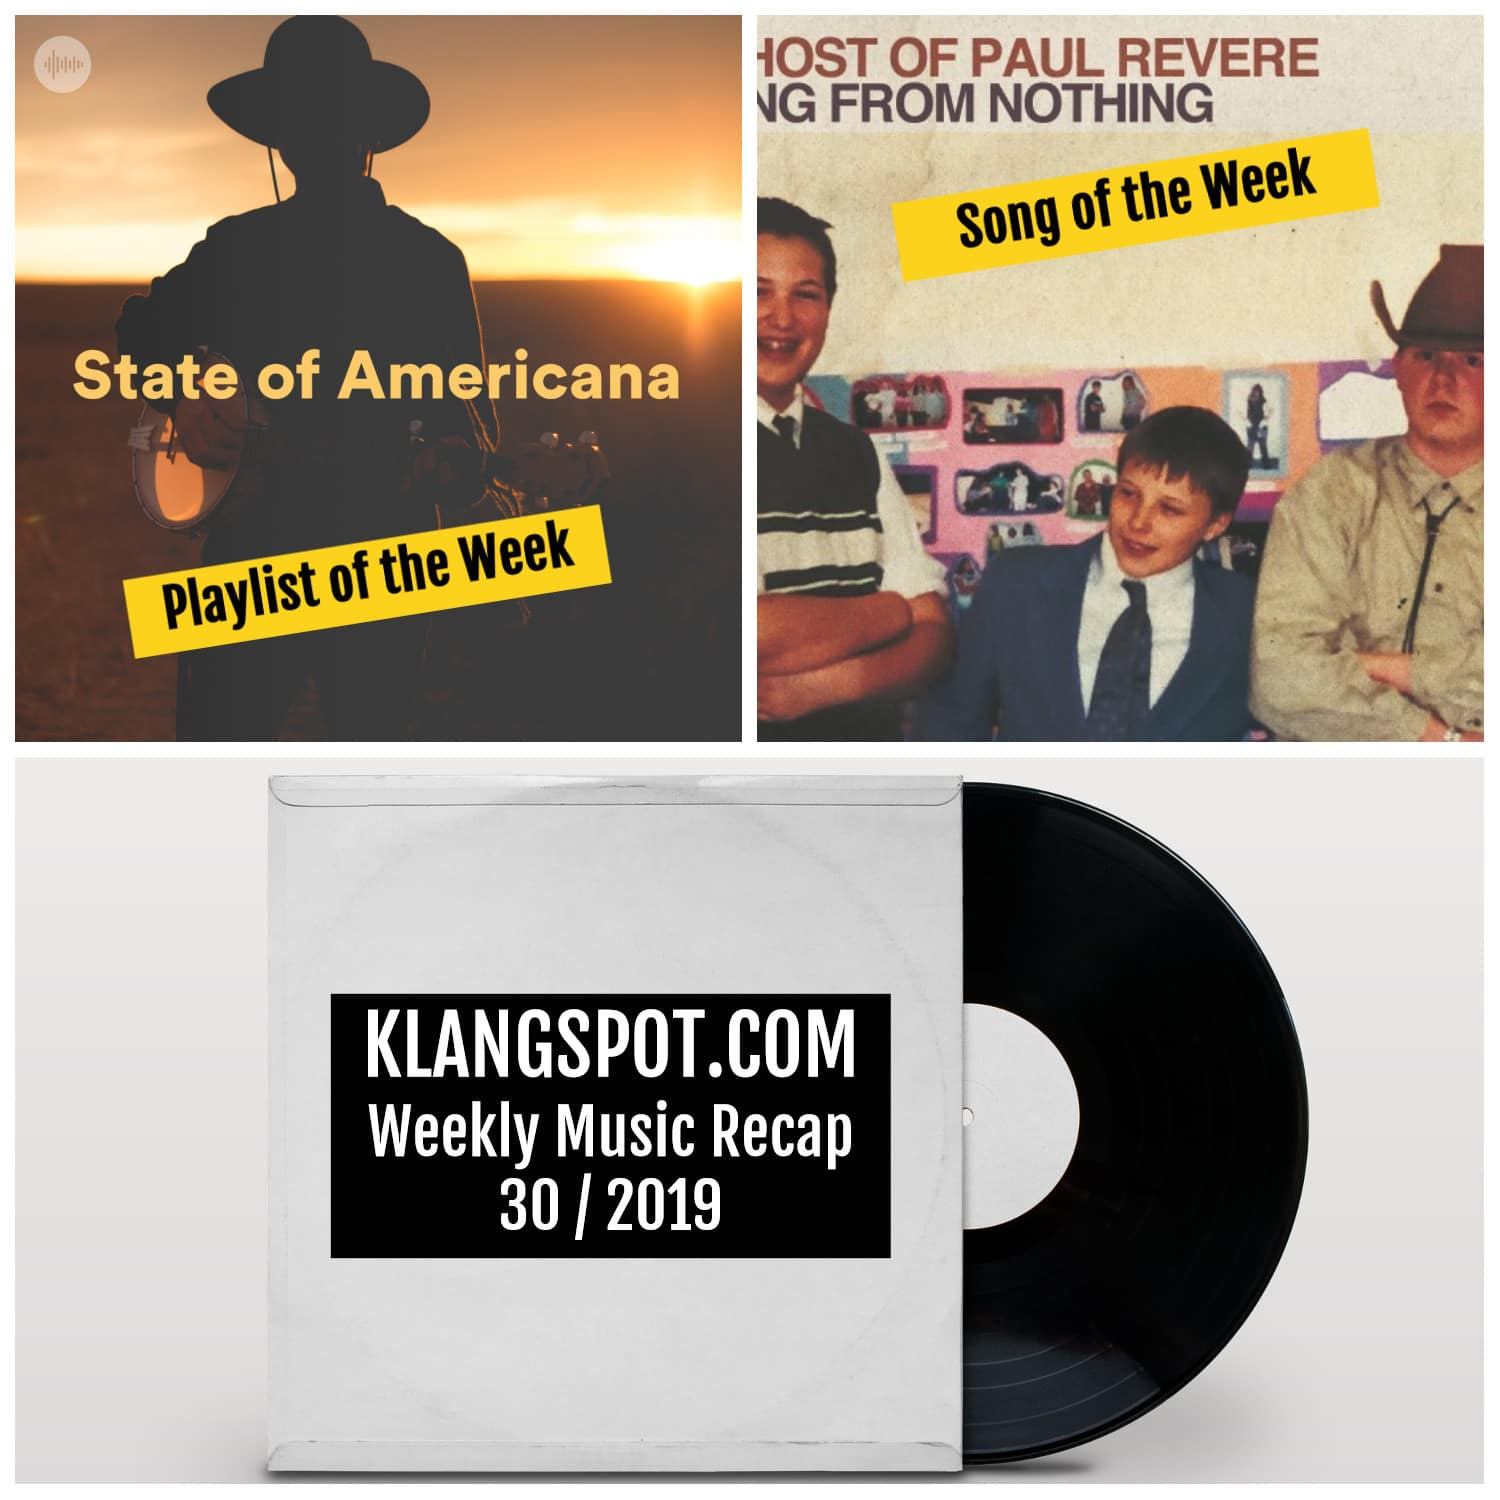 Weekly Music Recap 30/2019: Stafe of Americana / The Ghost of Paul Revere - 'Nothing from Nothing'